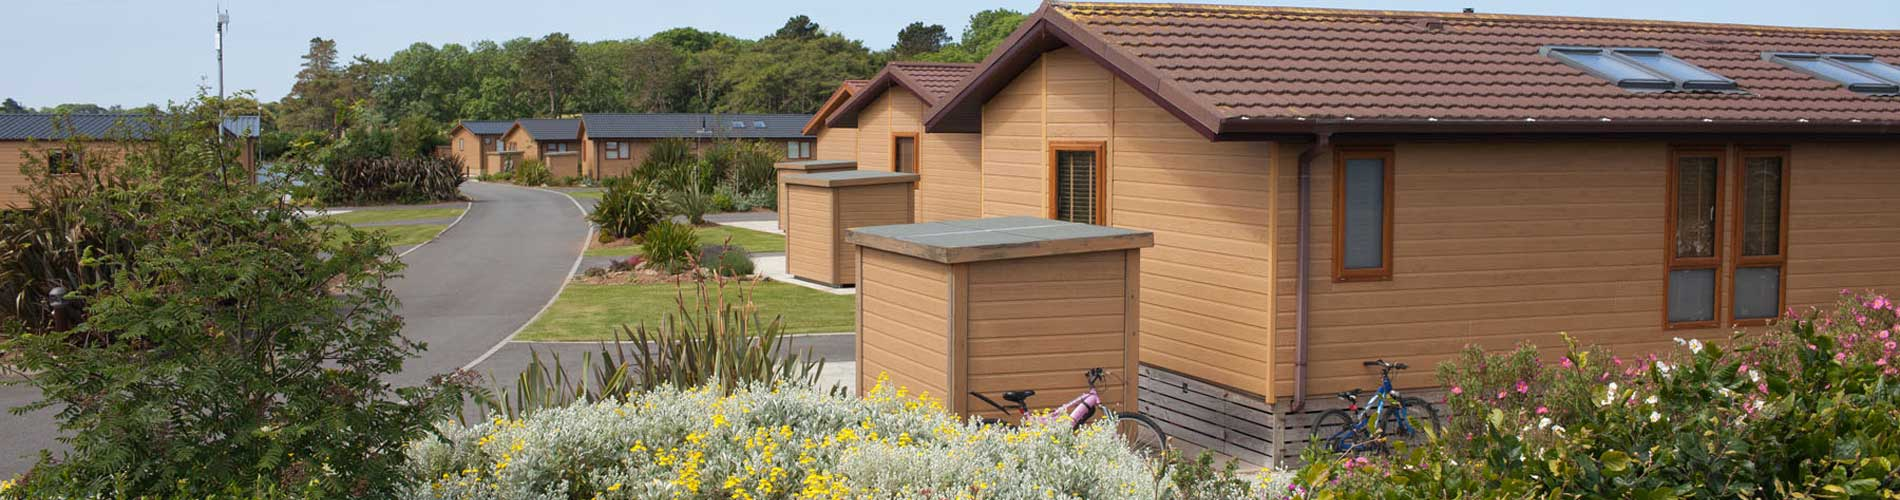 Luxury Lodges at Home Farm Anglesey